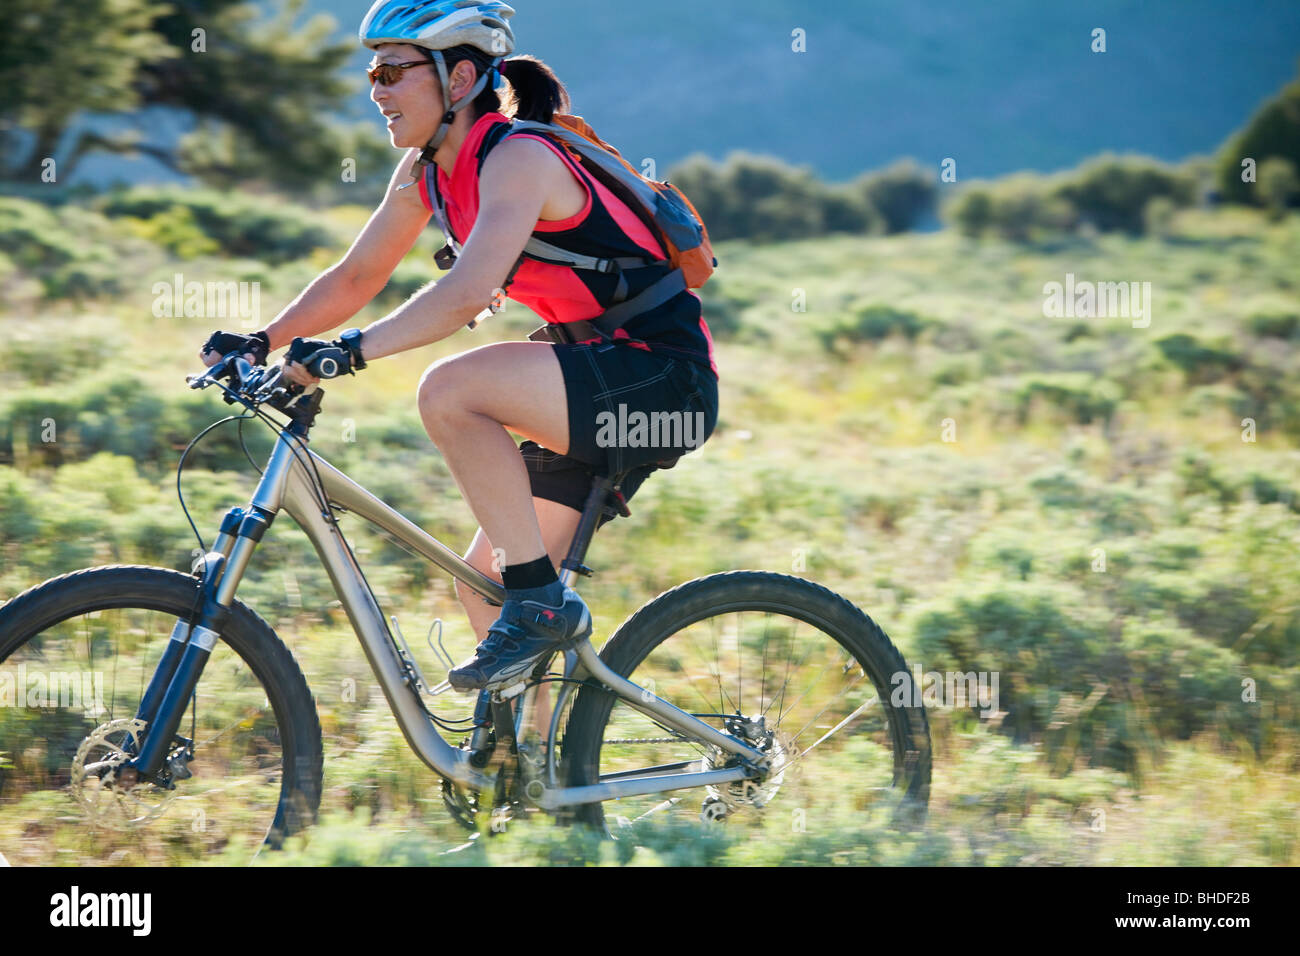 Japanese woman riding bicycle Banque D'Images